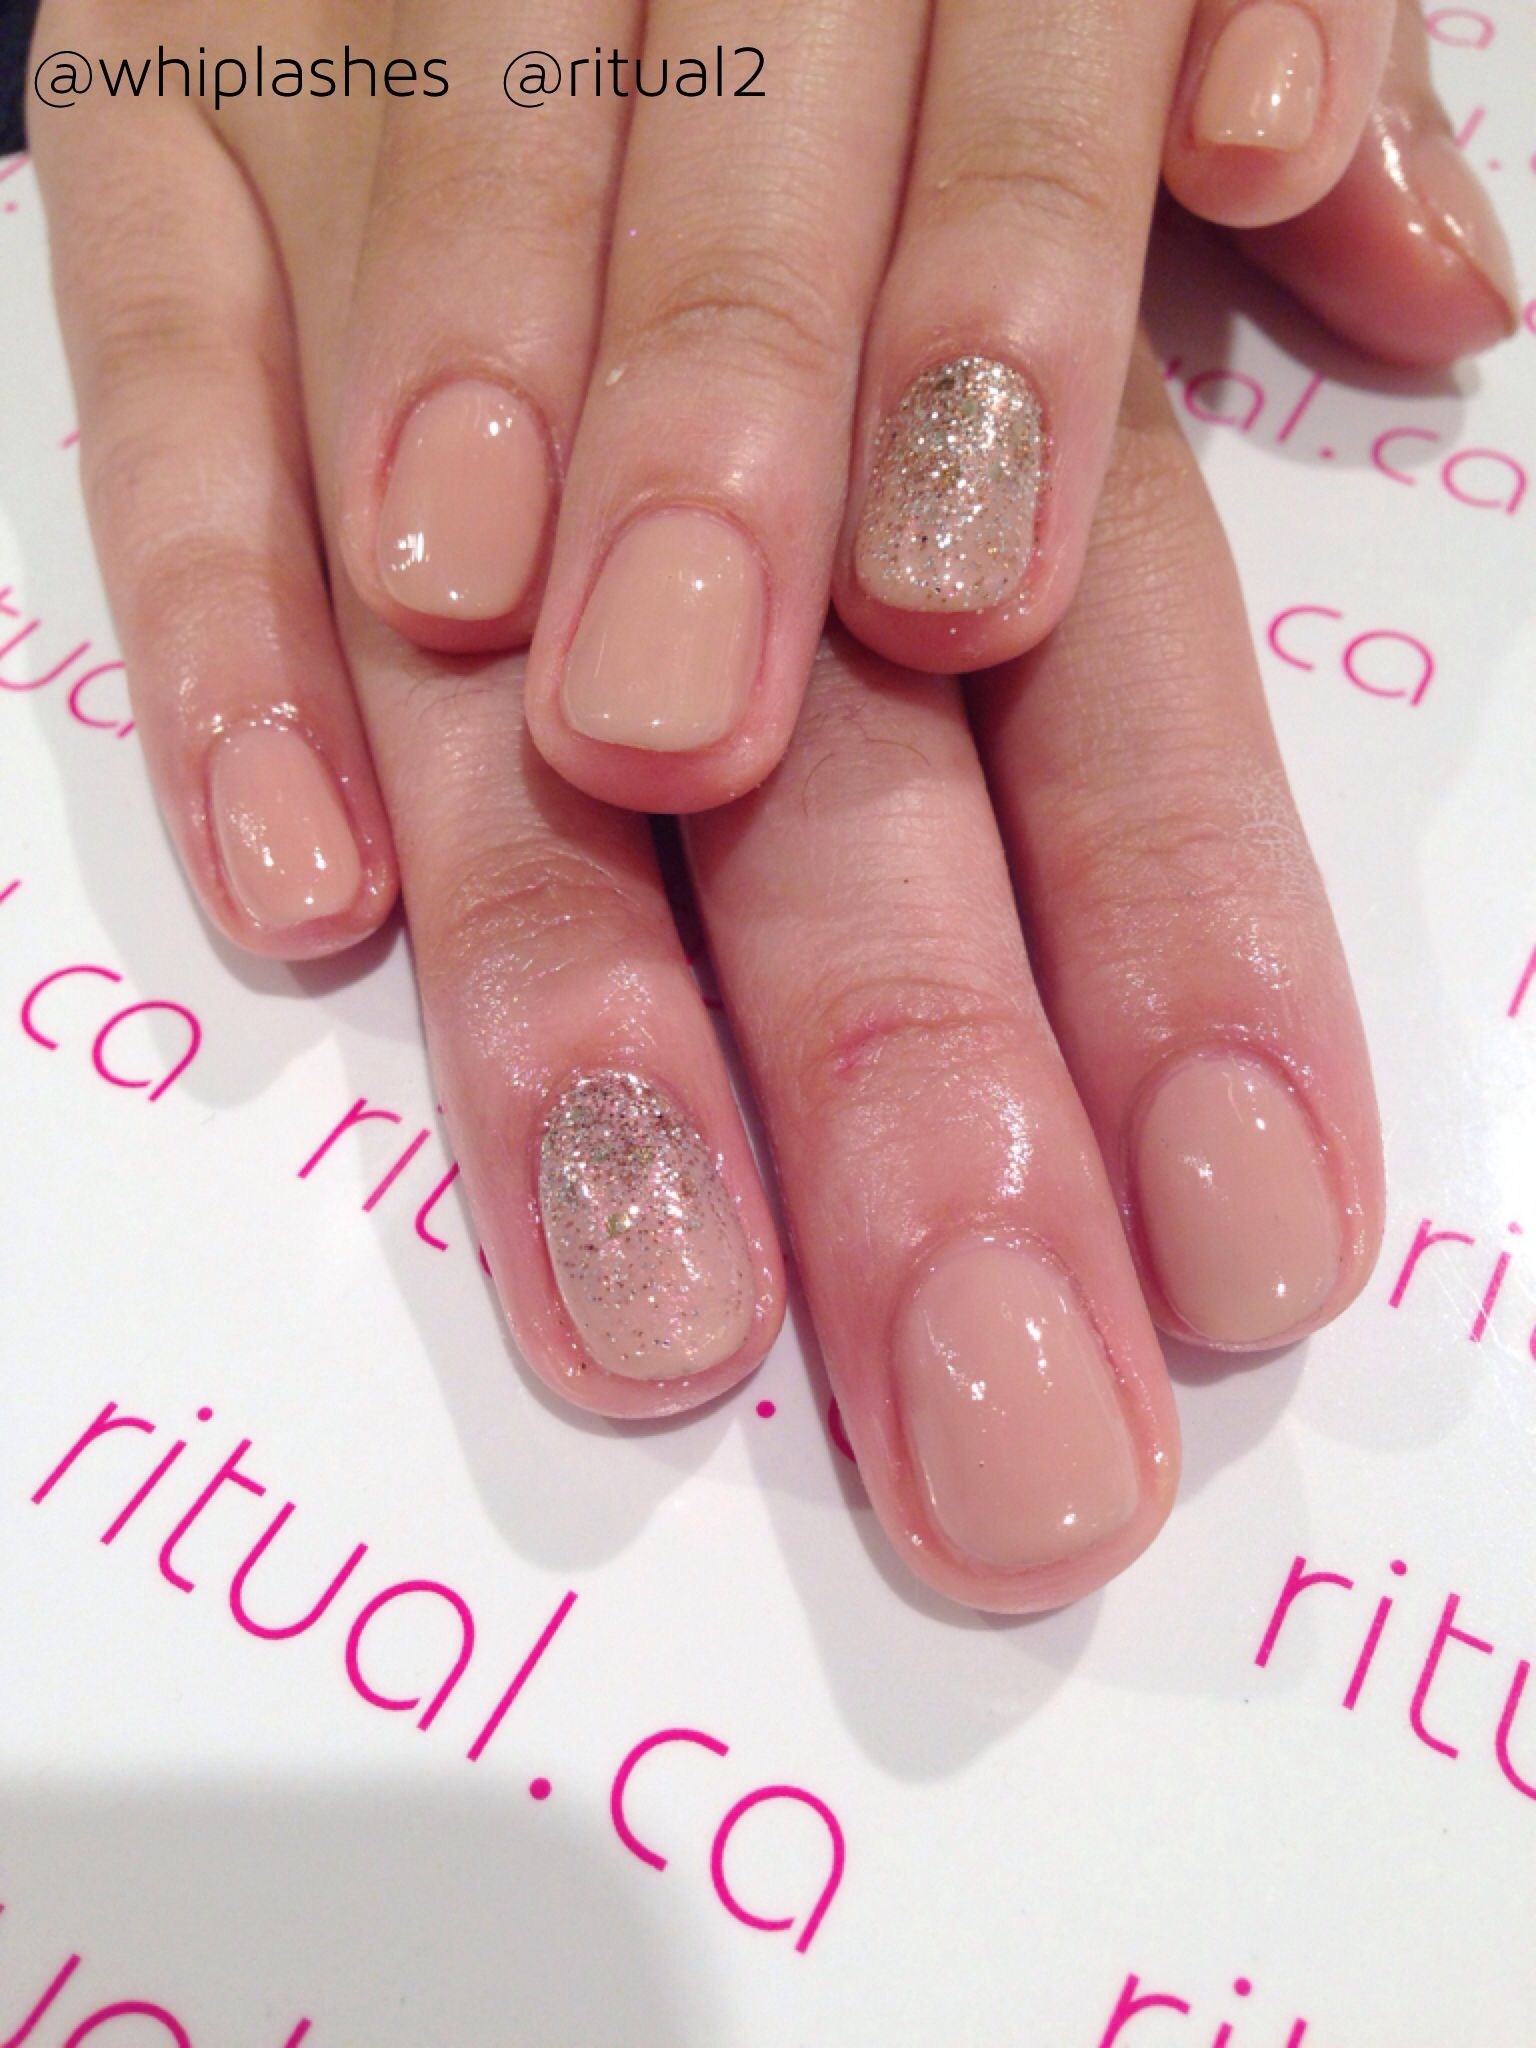 Cnd Shellac In Powder My Nose Over Satin Pajamas Feature Nail Using Cnd Additive In Pink Gold